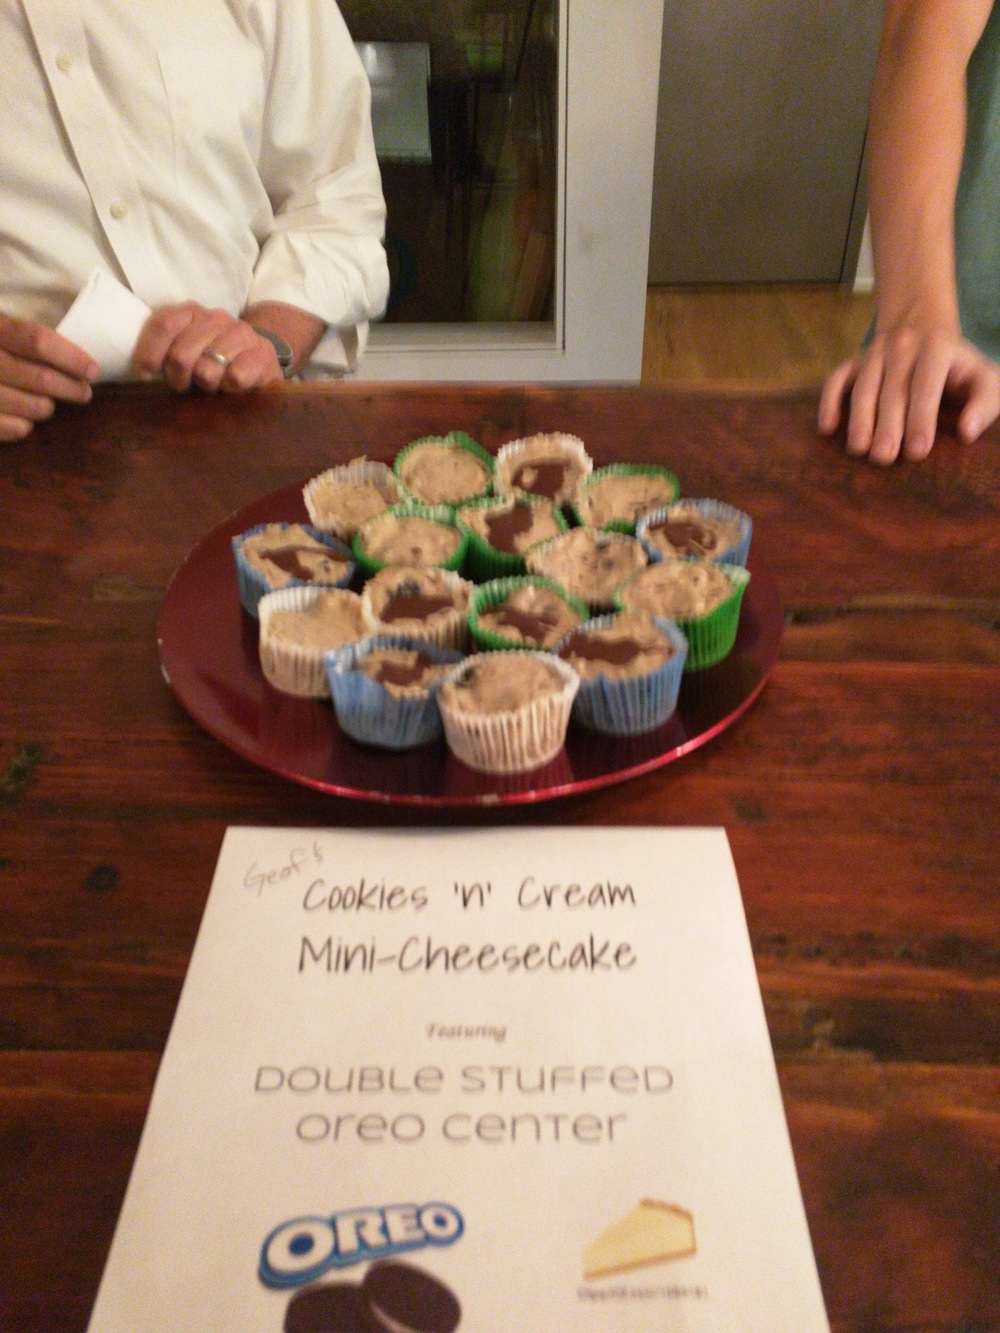 Day 2: Geof's Cookies & Cream & Cookies mini-Cheesecakes (Oreos inside!)